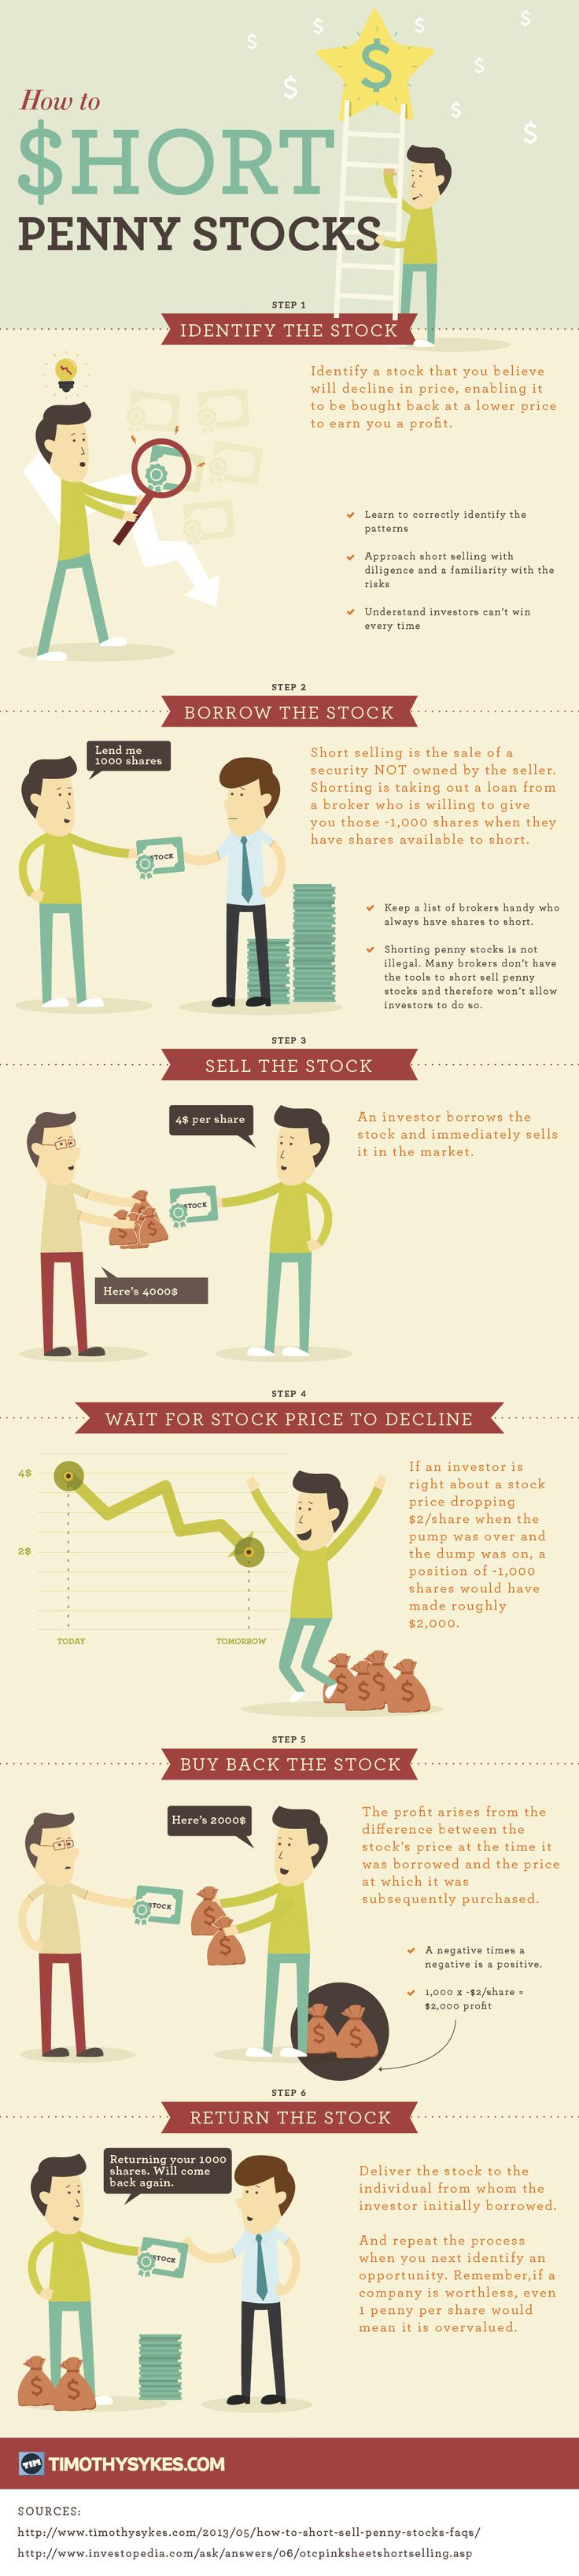 This infographic is an introduction to short selling penny stocks...